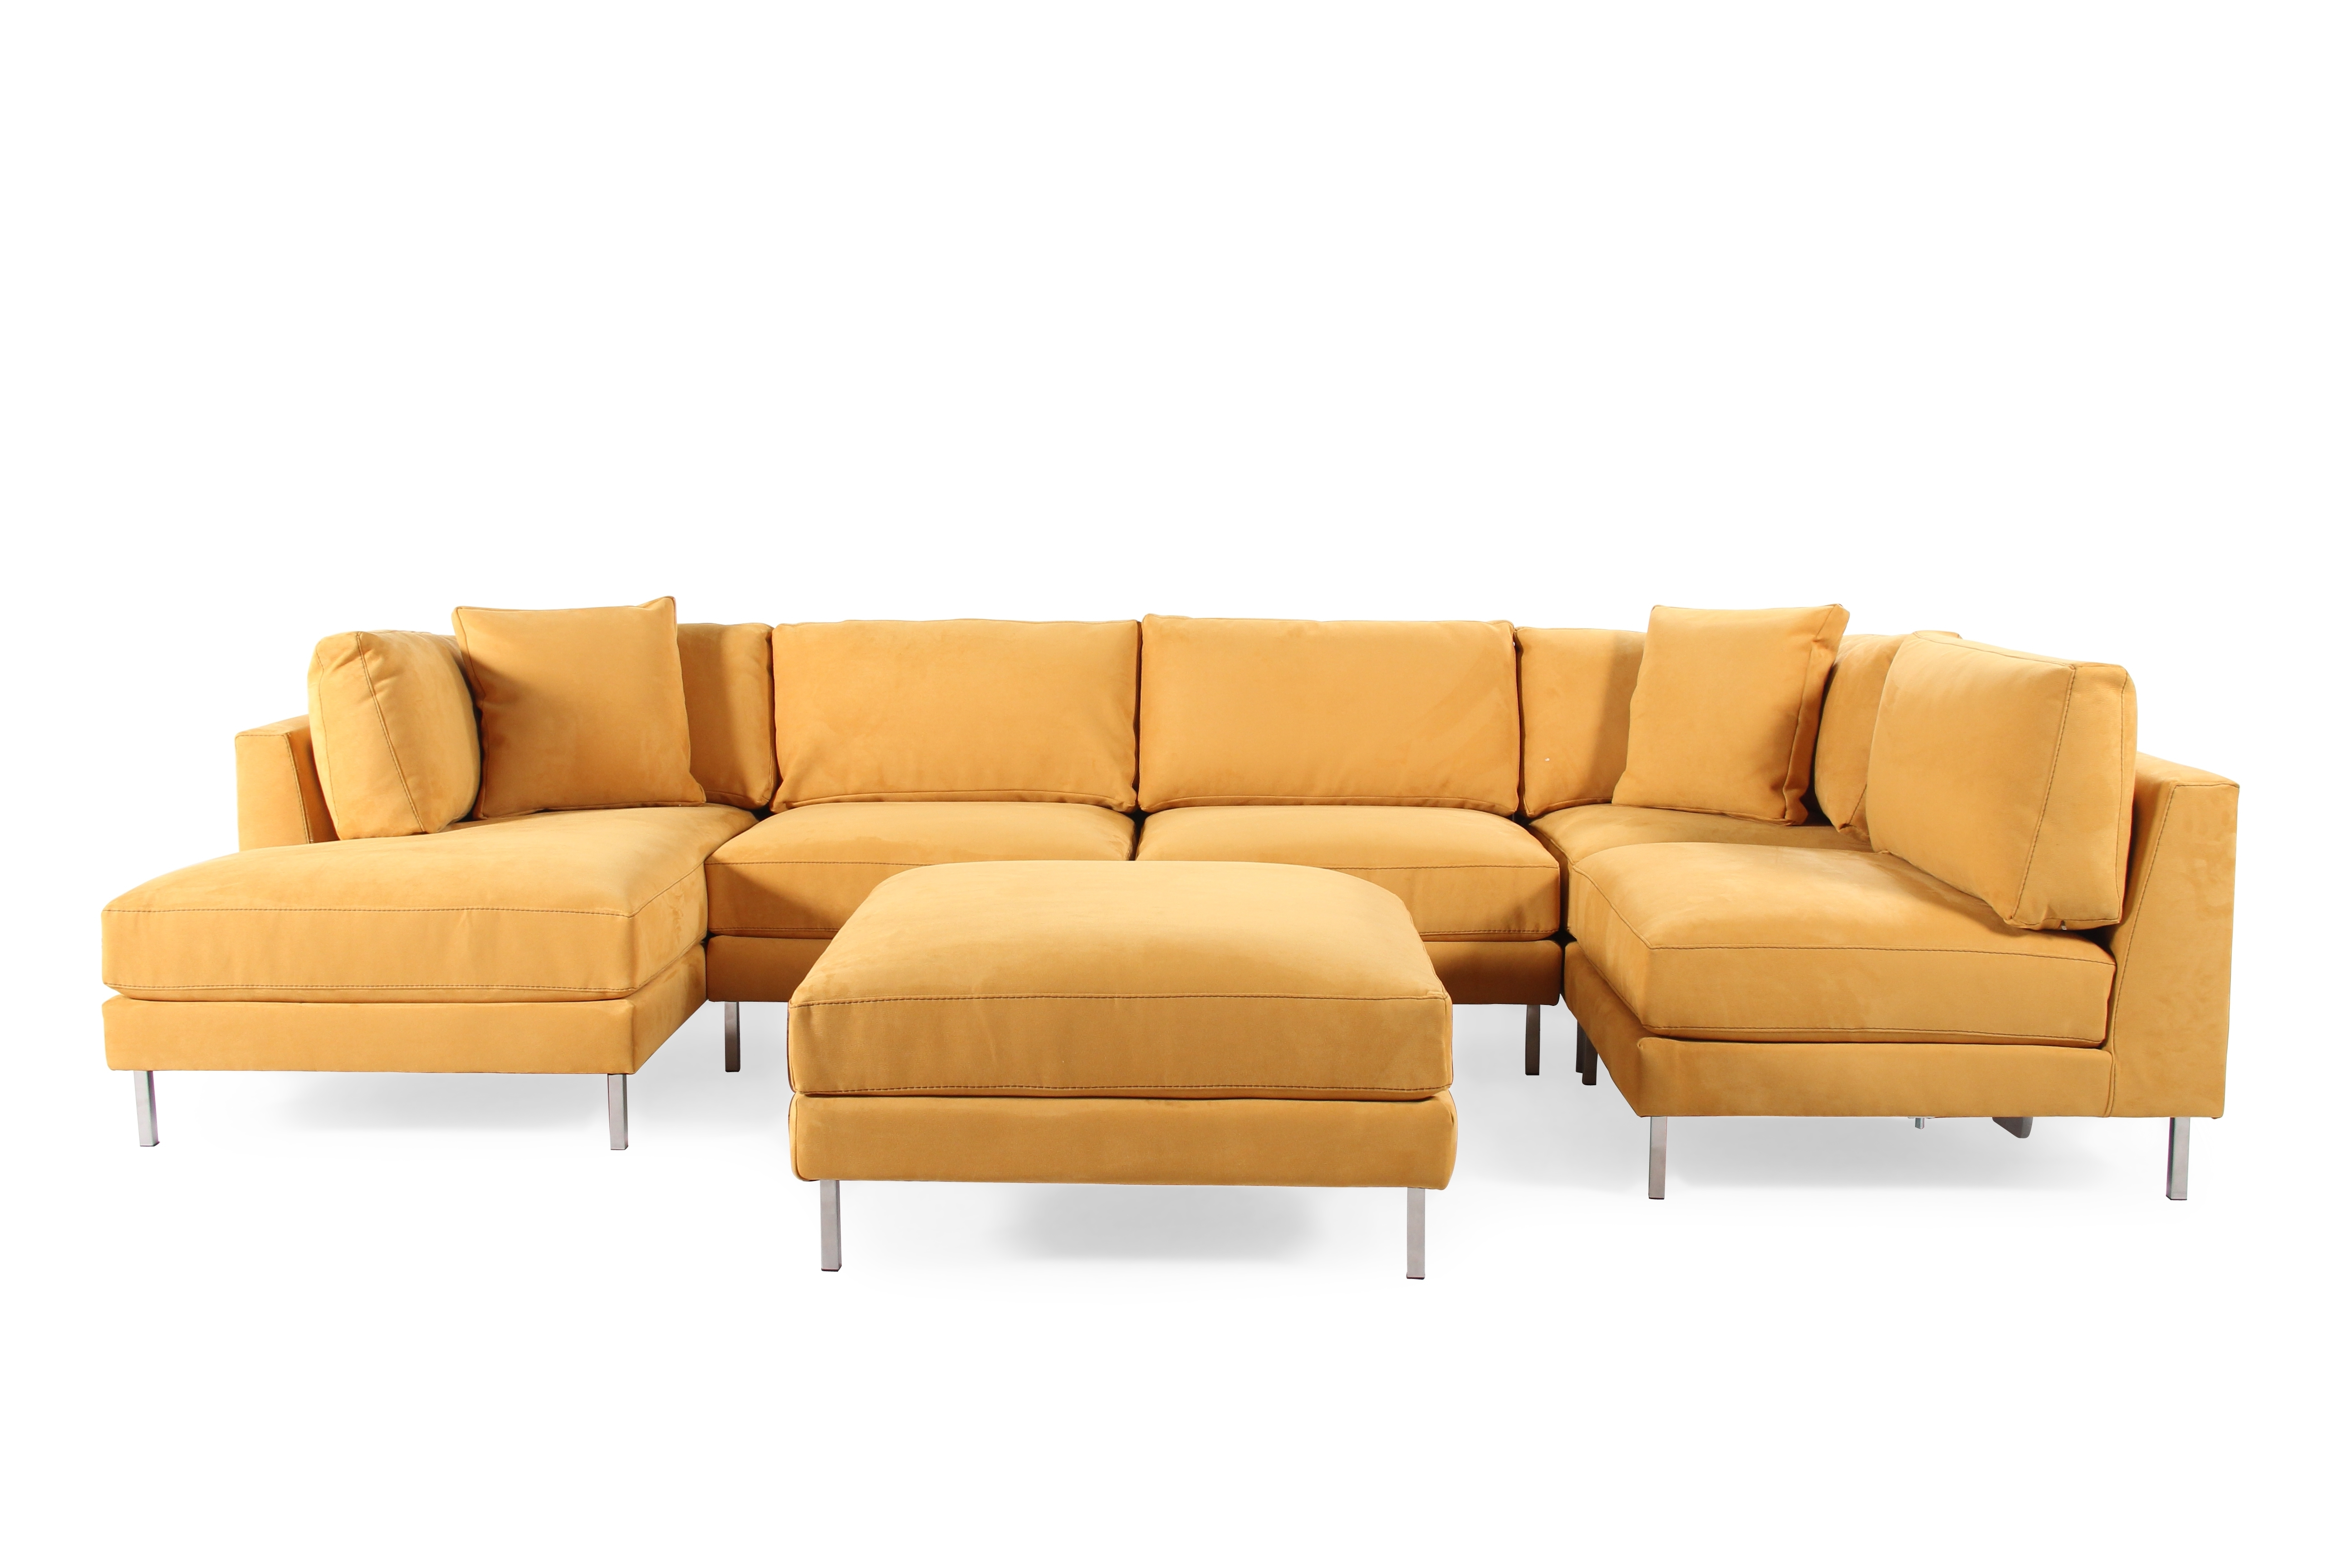 Most Por St Louis Sectional Sofas With Stylish Buildsimplehome View